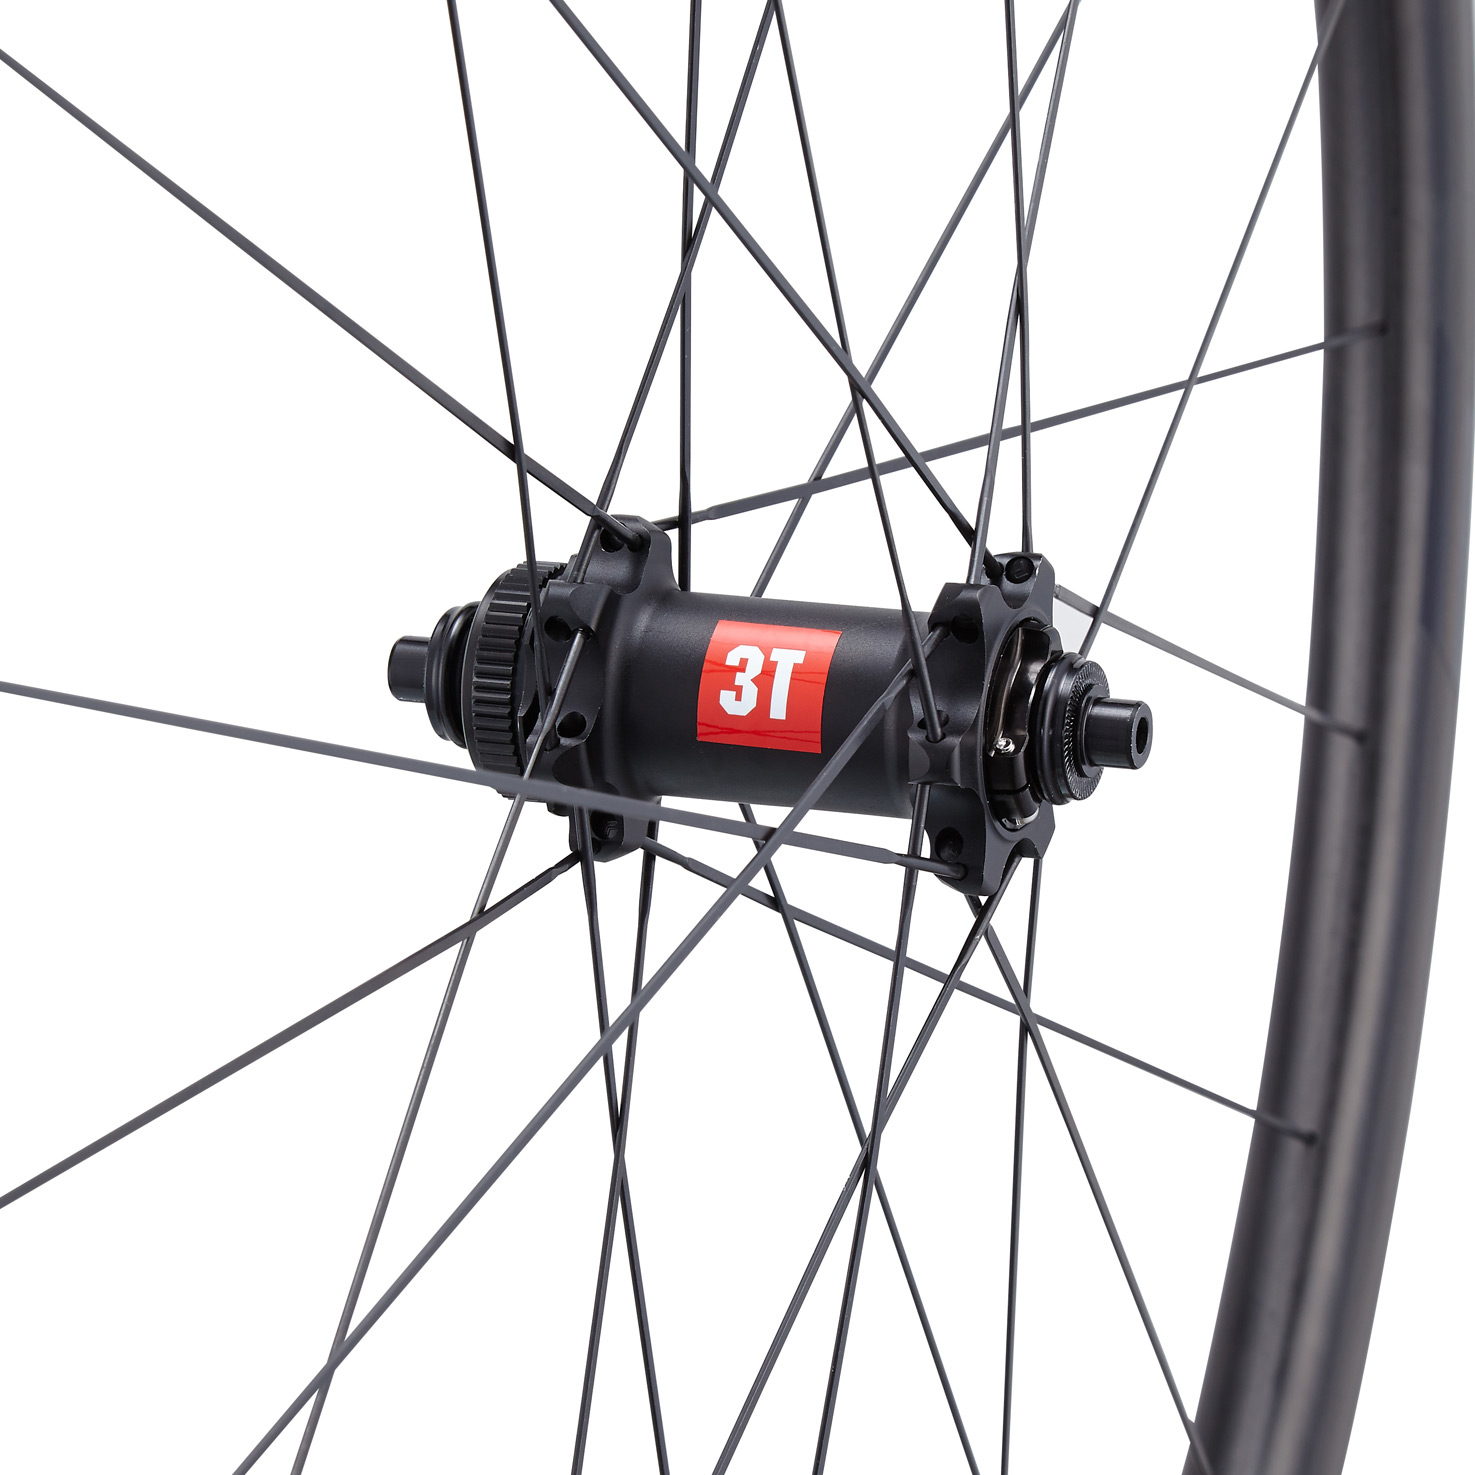 EB15: 3T Rolls into Disc-brake Road with Discus Carbon and ...